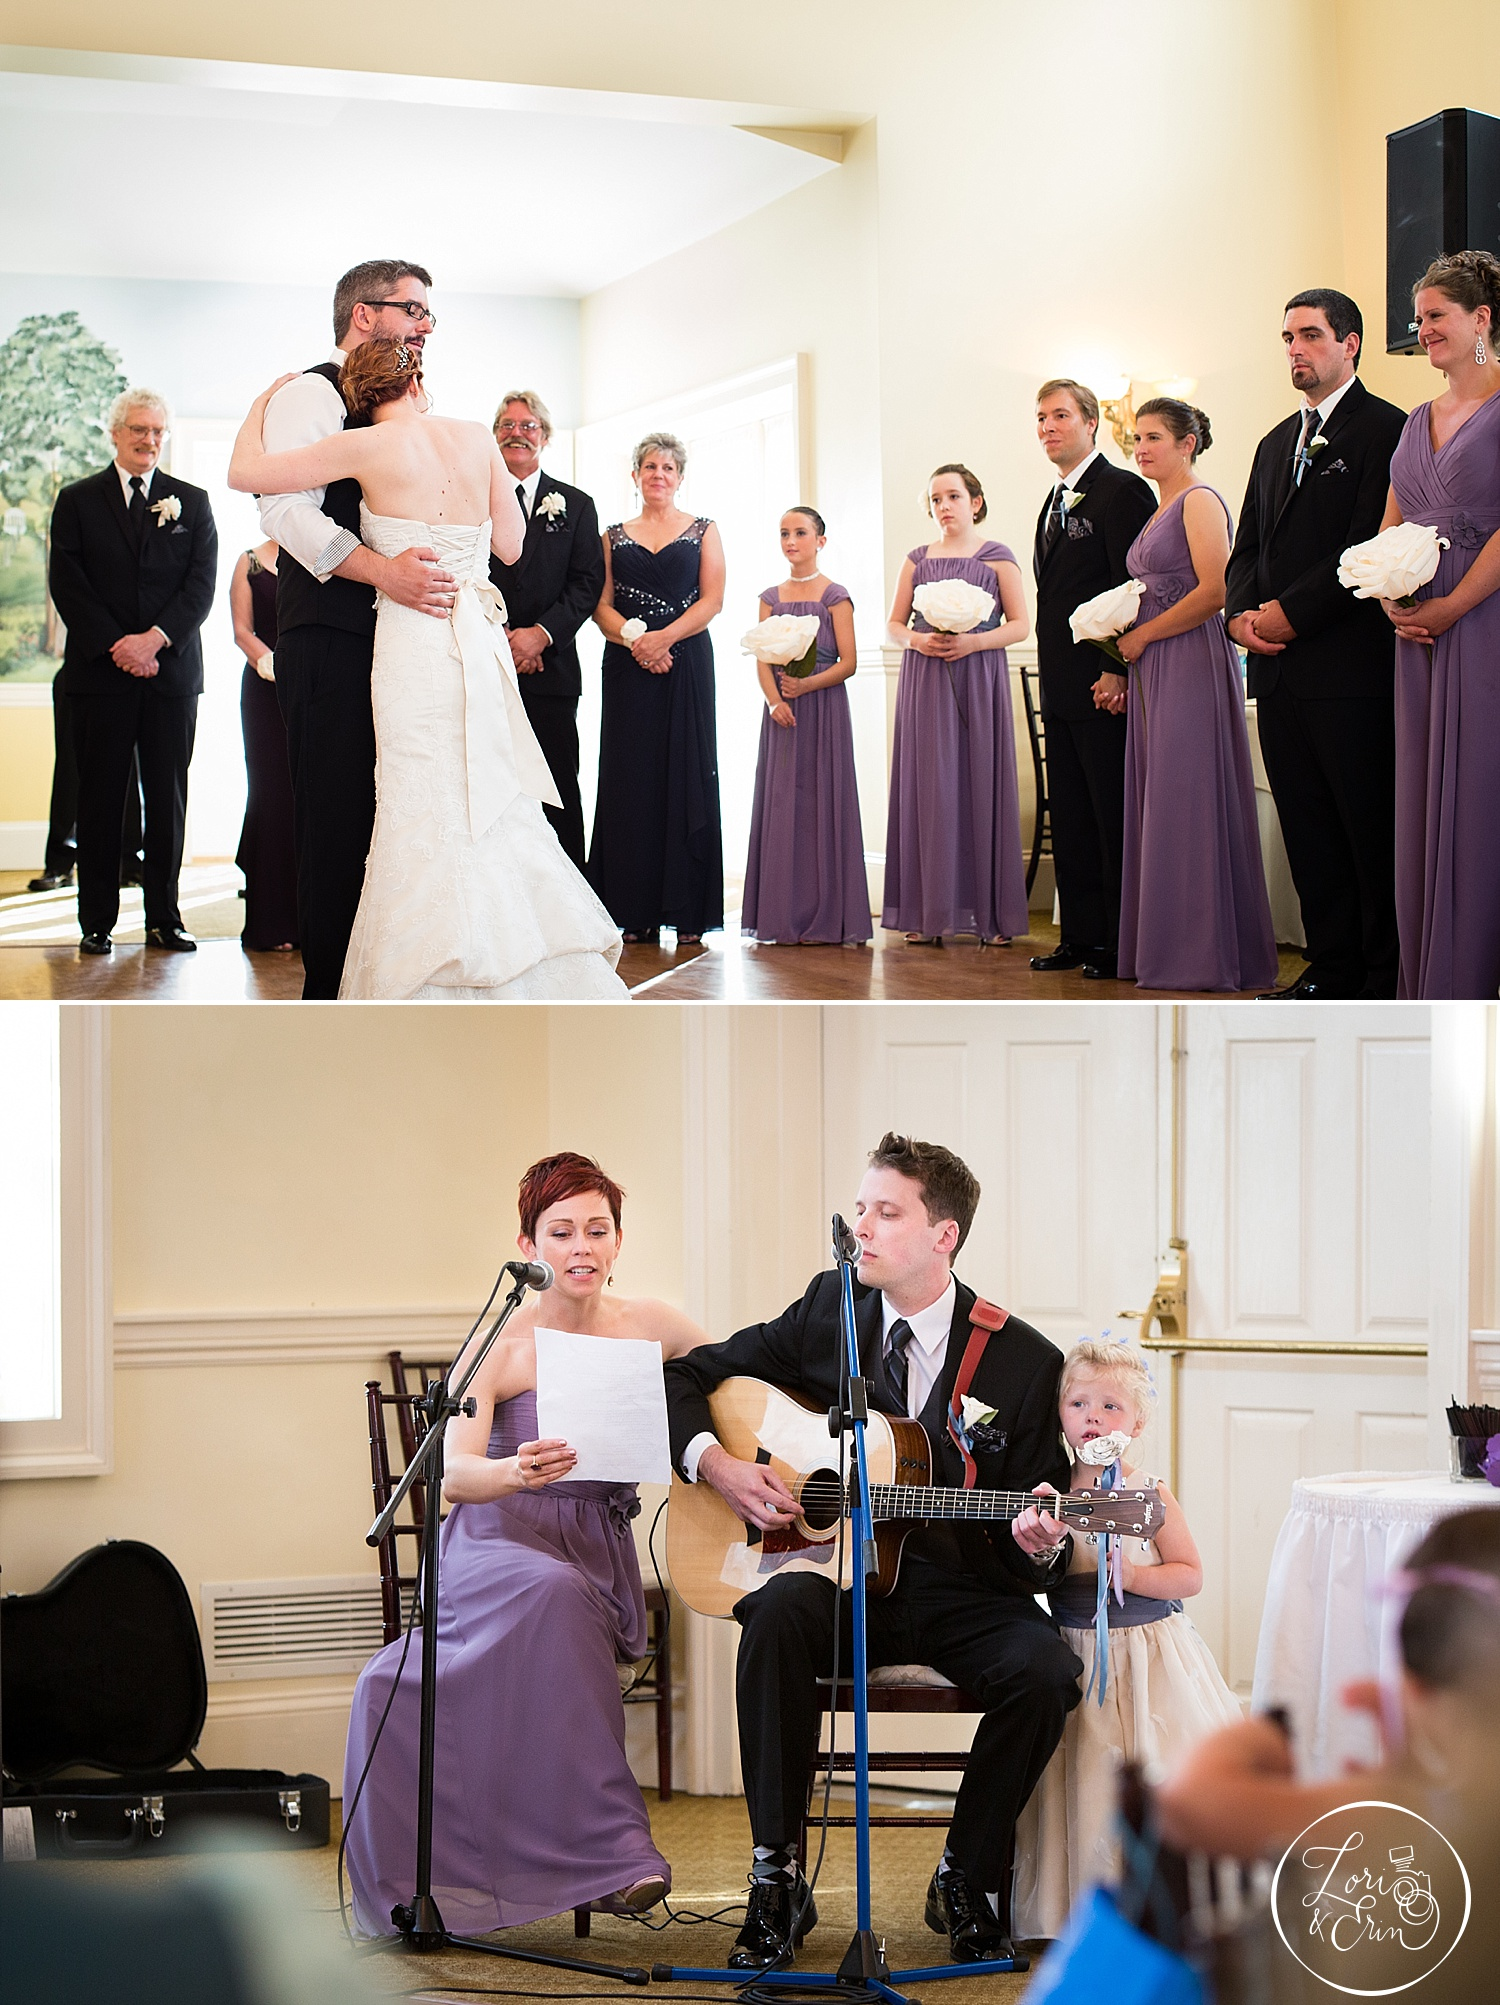 Their first dance song was performed by Man of Honor, Andy and beautiful Bridesmaid Elizabeth -with a little moral support from Miss Lucy.